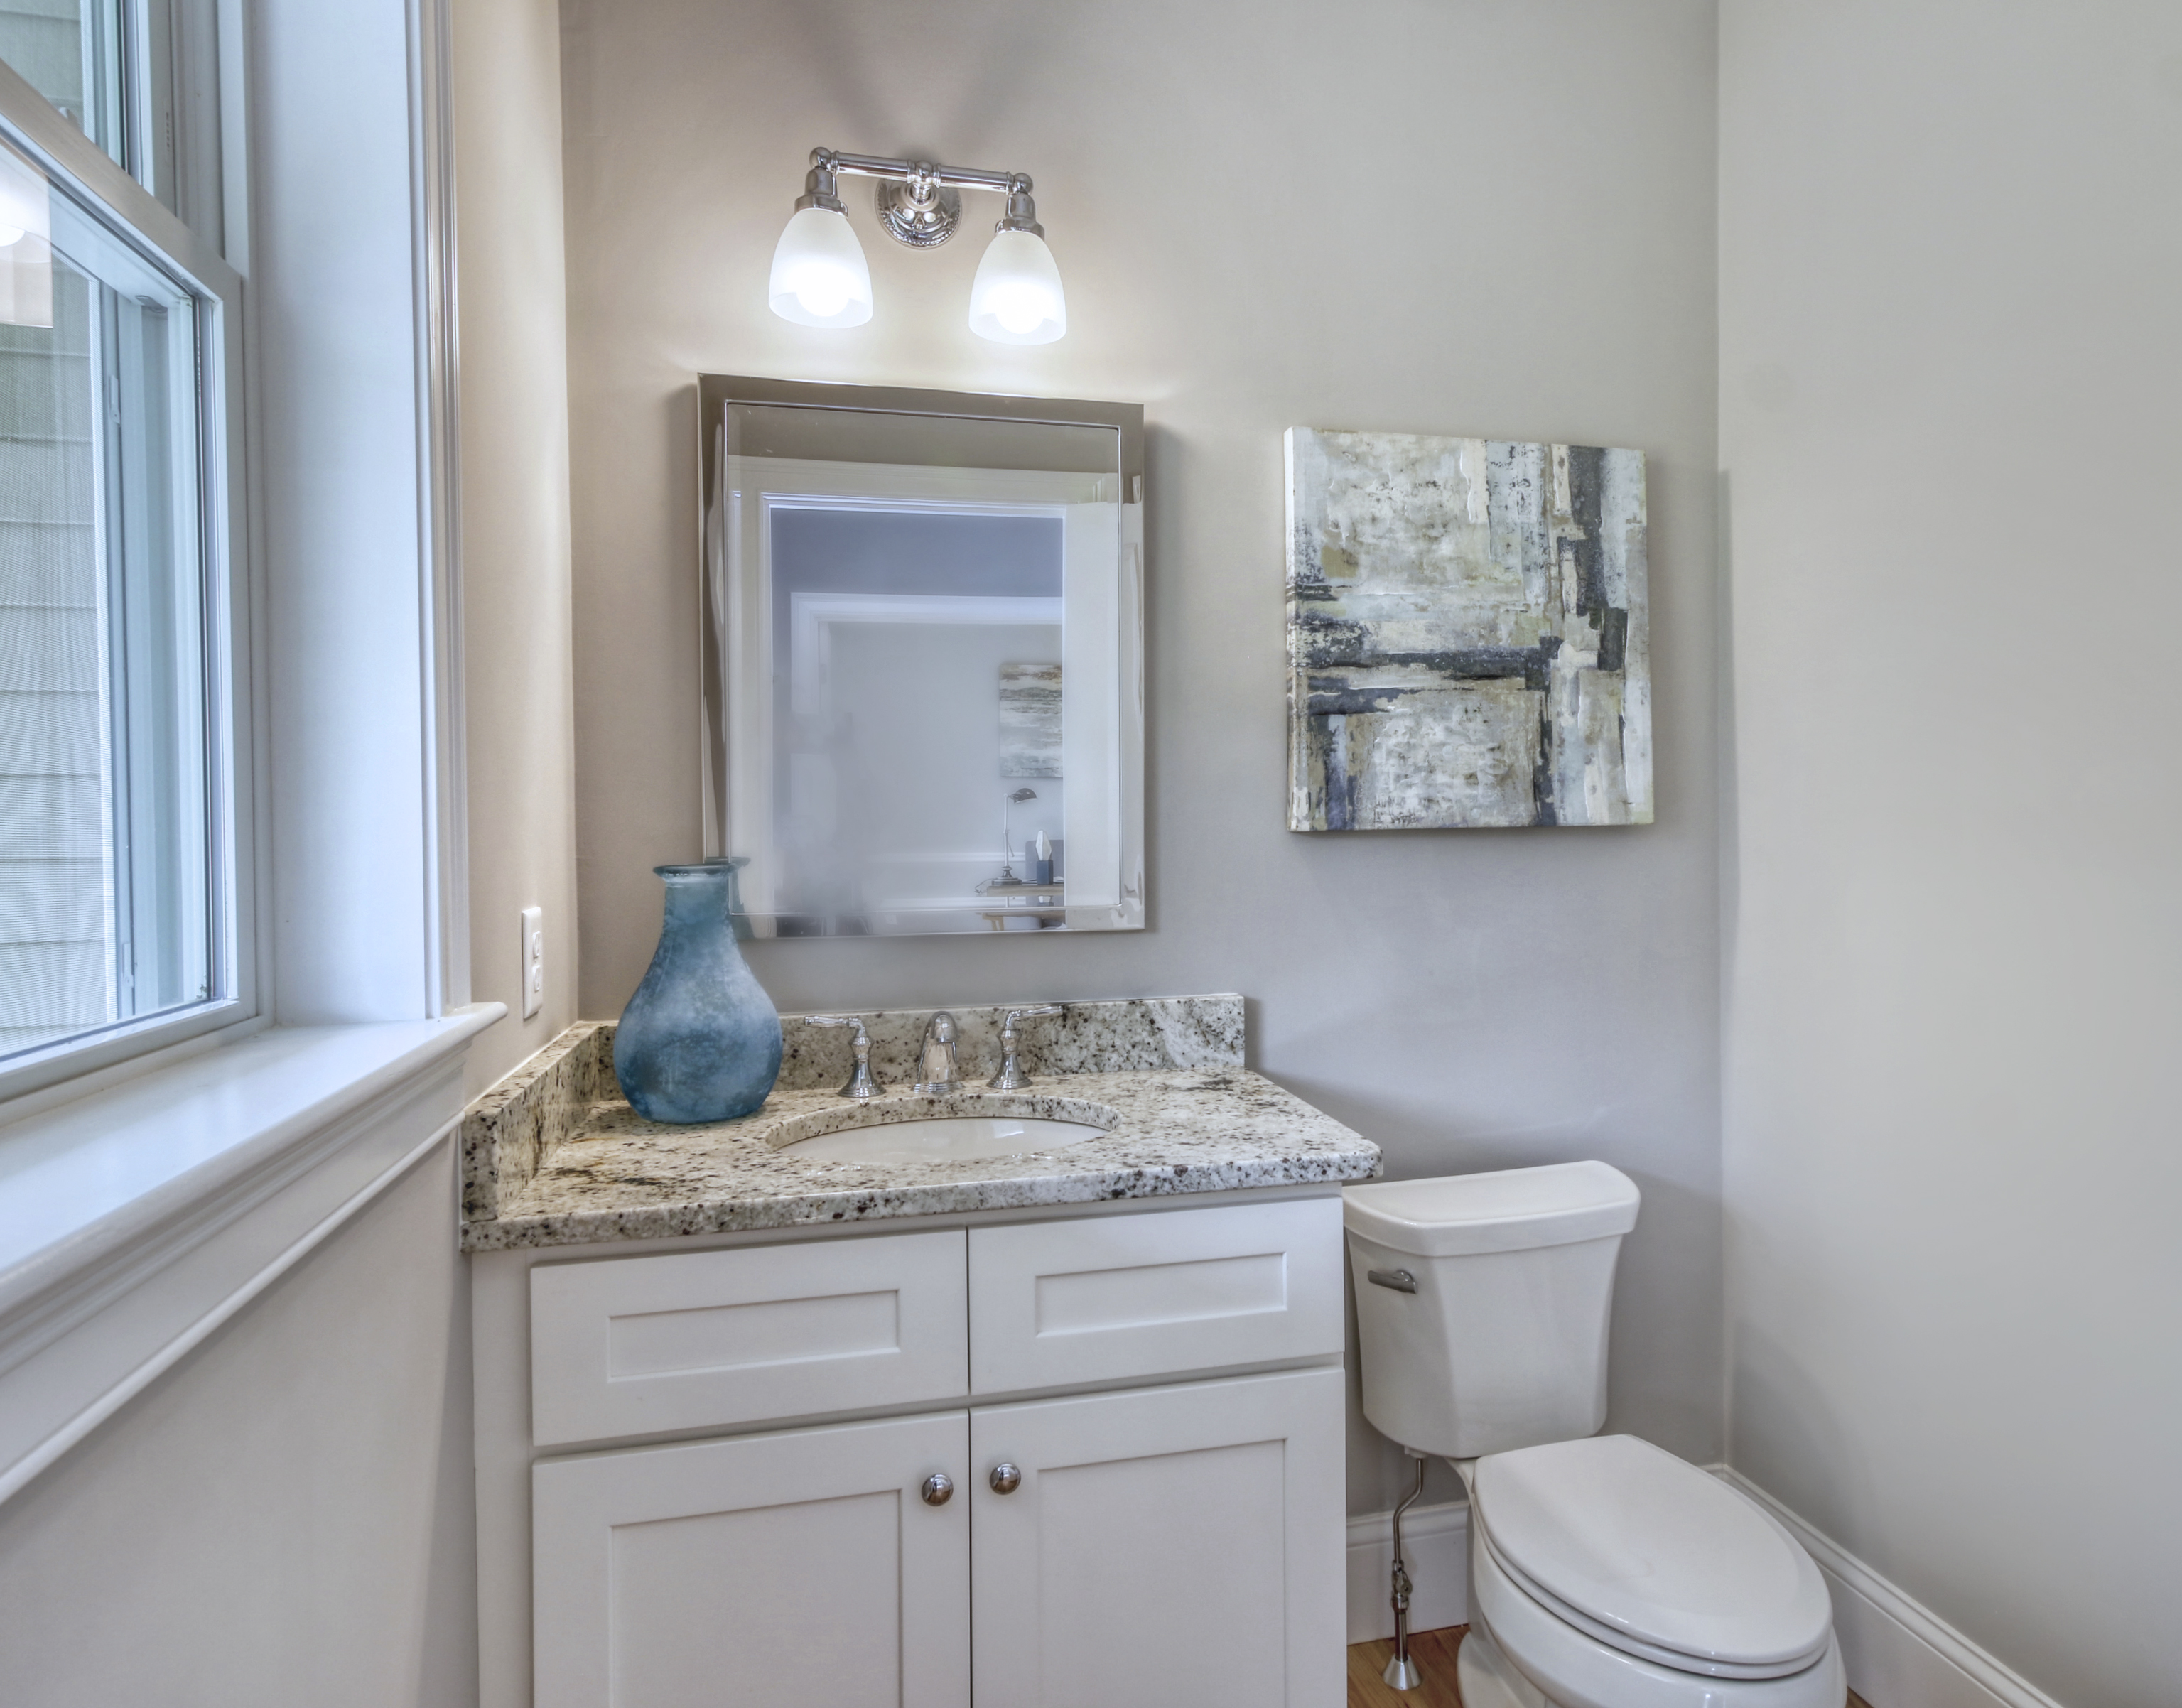 Light grey bathroom walls with a white toilet and sink cabinetry